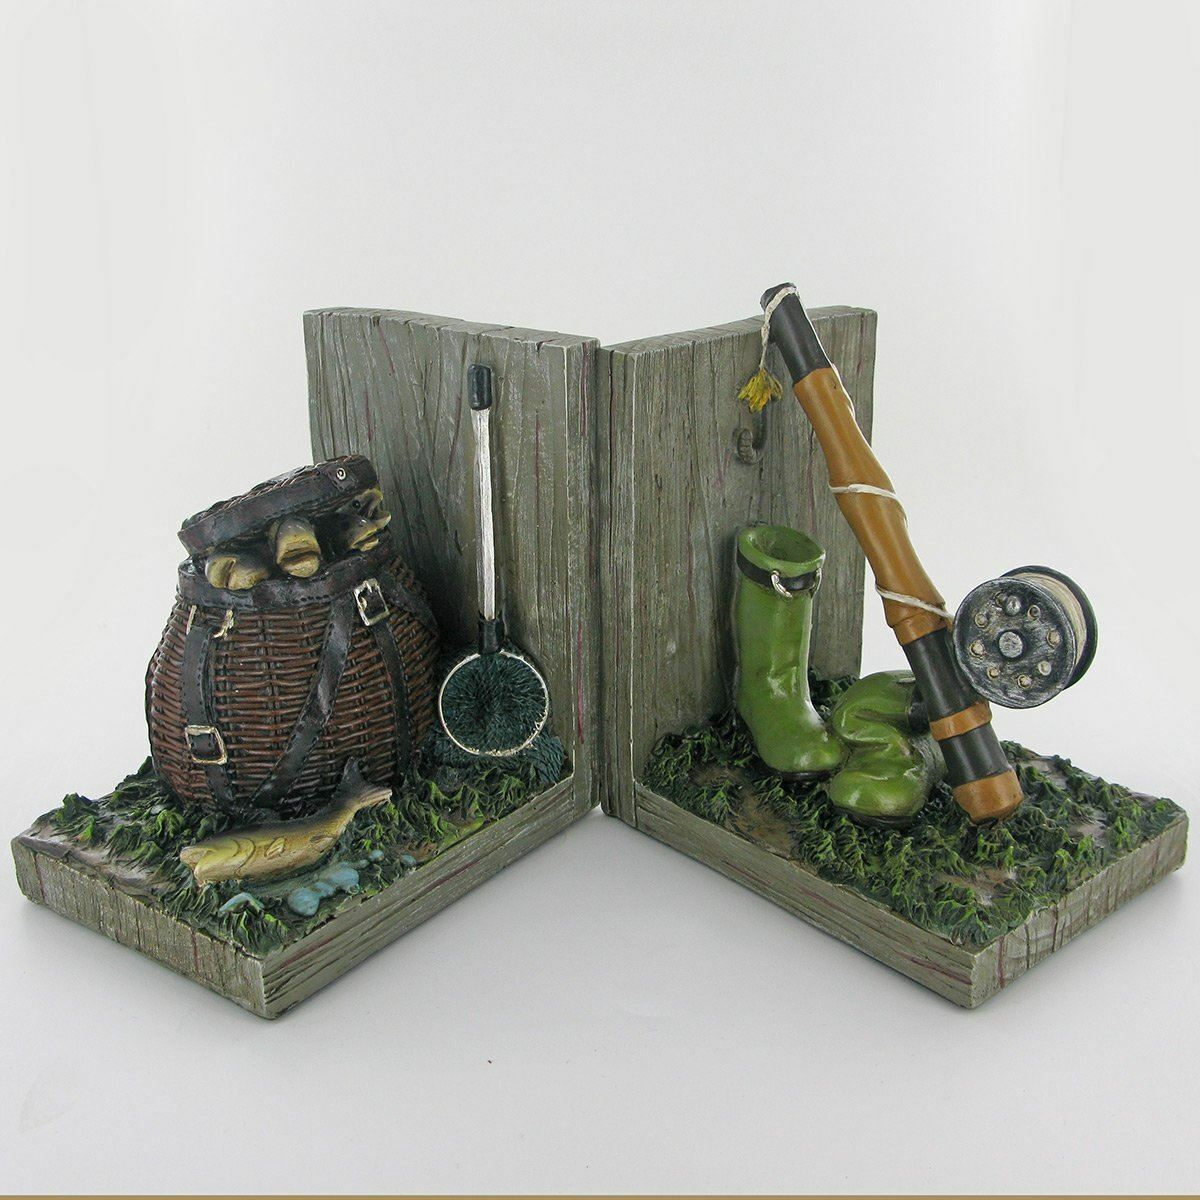 Fishing Bookends Fisherman Book Ends Decorative Bookshelf Display Organizers